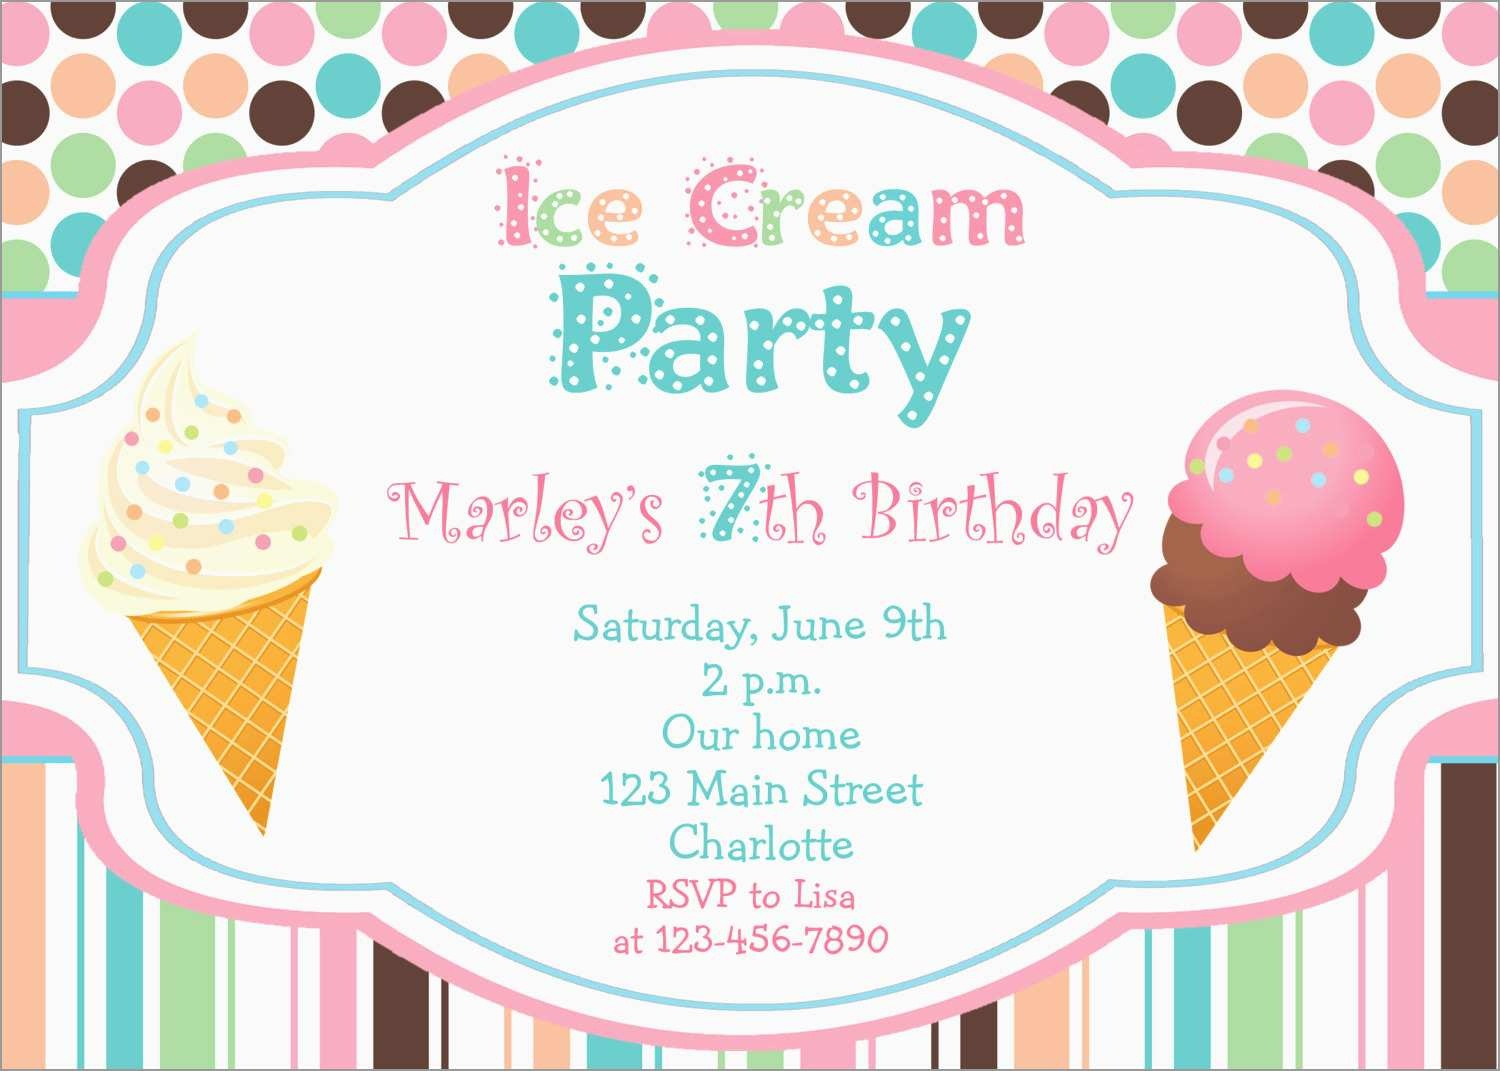 Luxury Ice Cream Social Invitation Template Free | Best Of Template - Ice Cream Party Invitations Printable Free